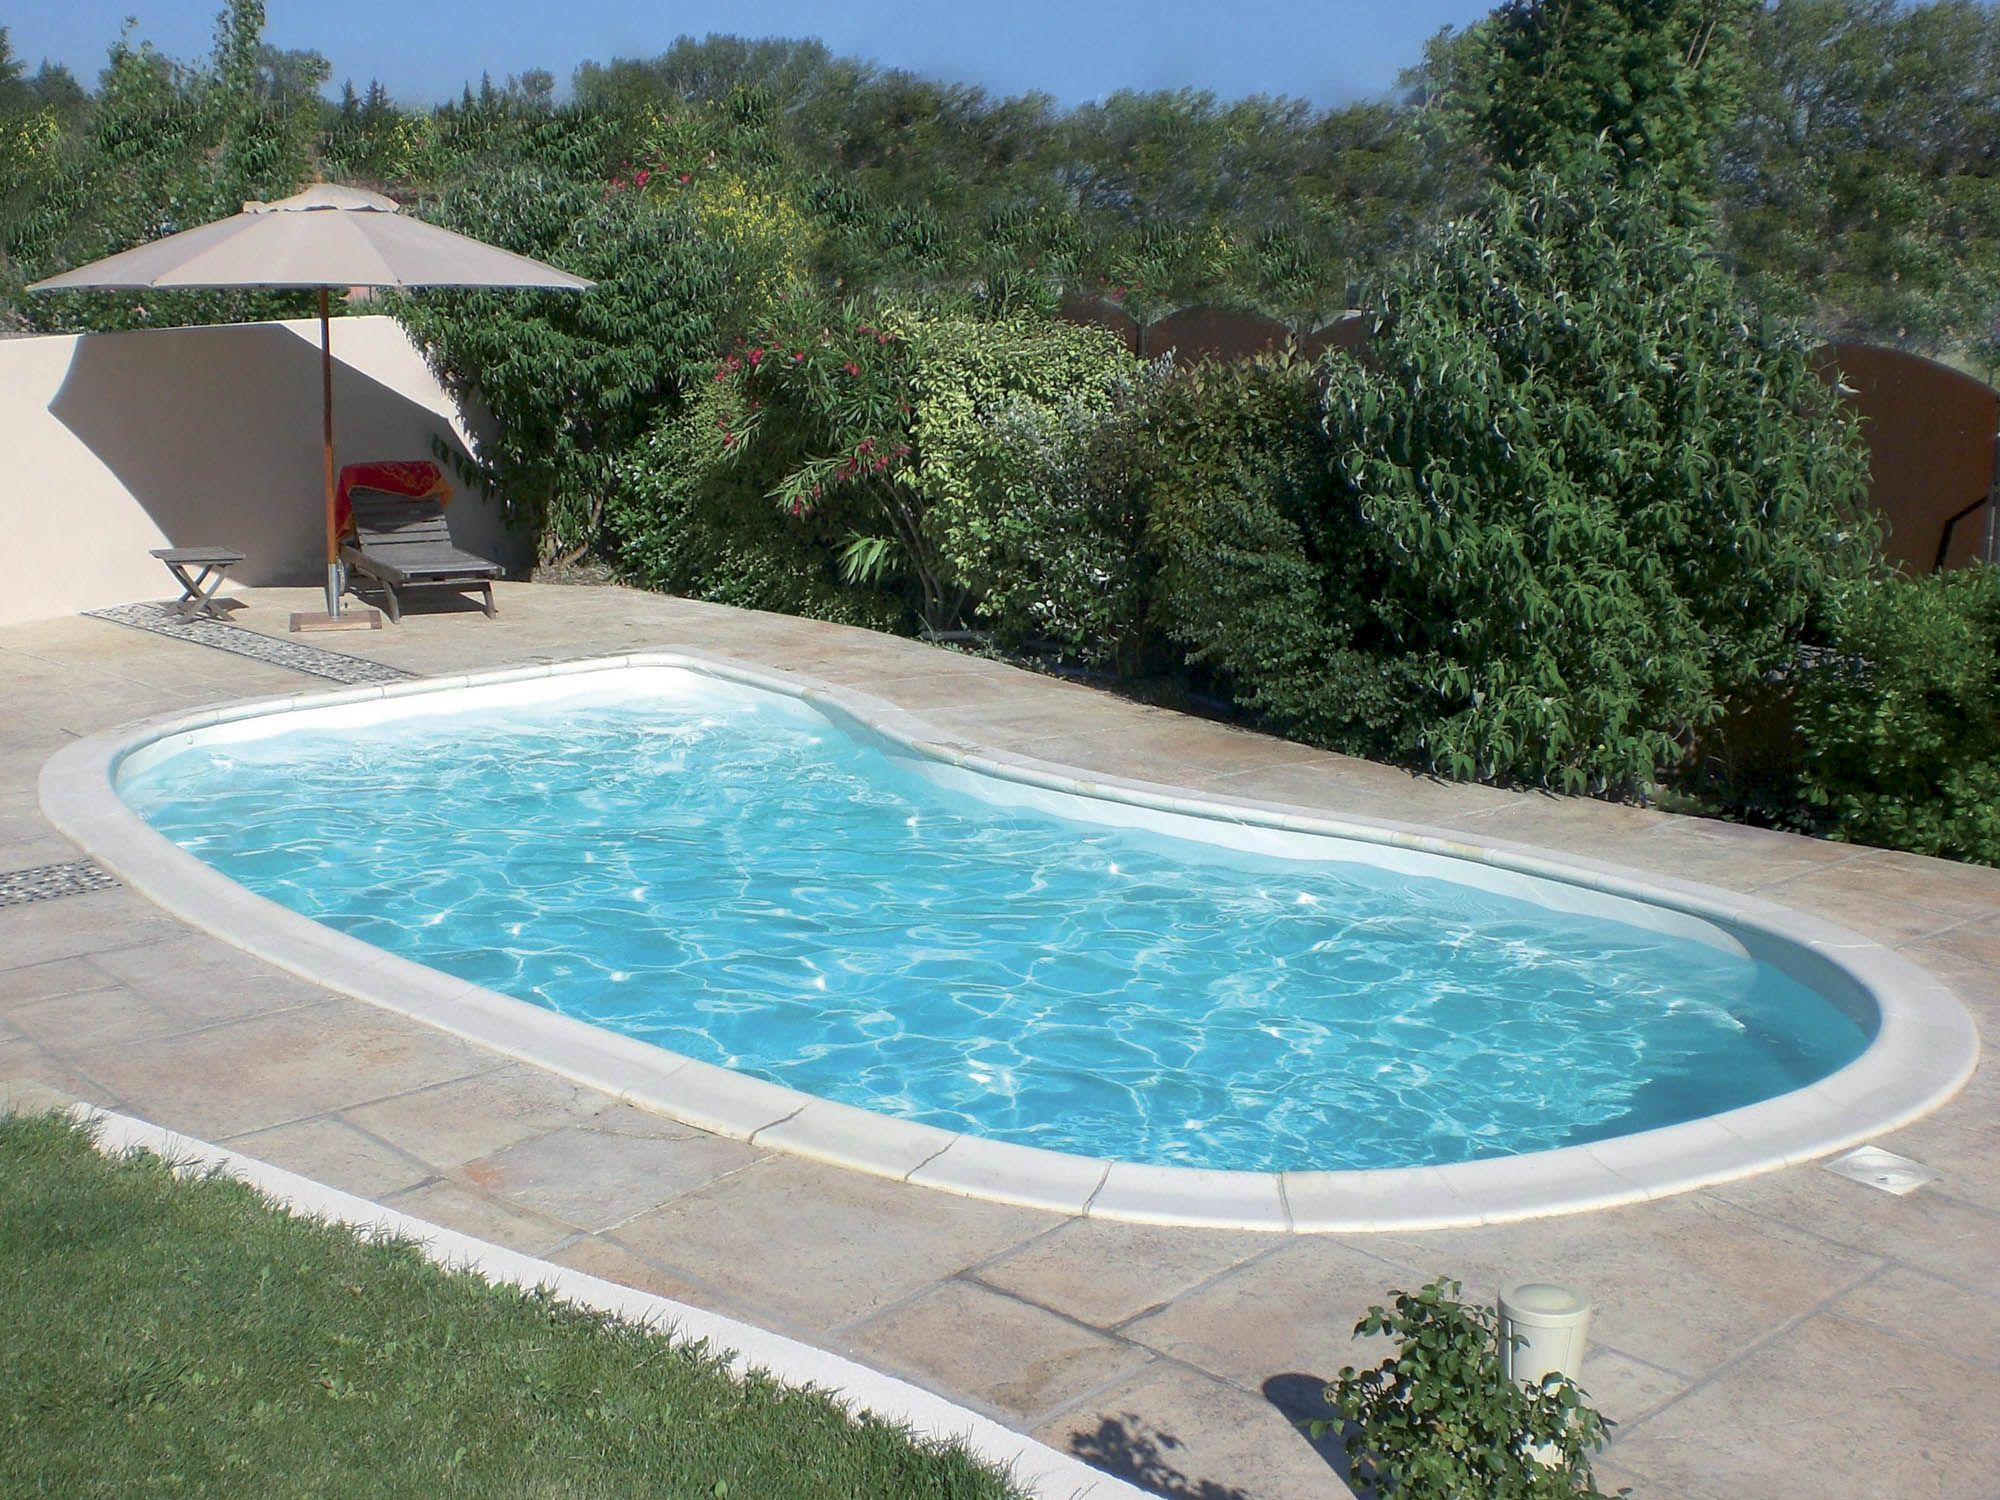 Piscine coque polyester ovation piscine haricot for Piscine polyester